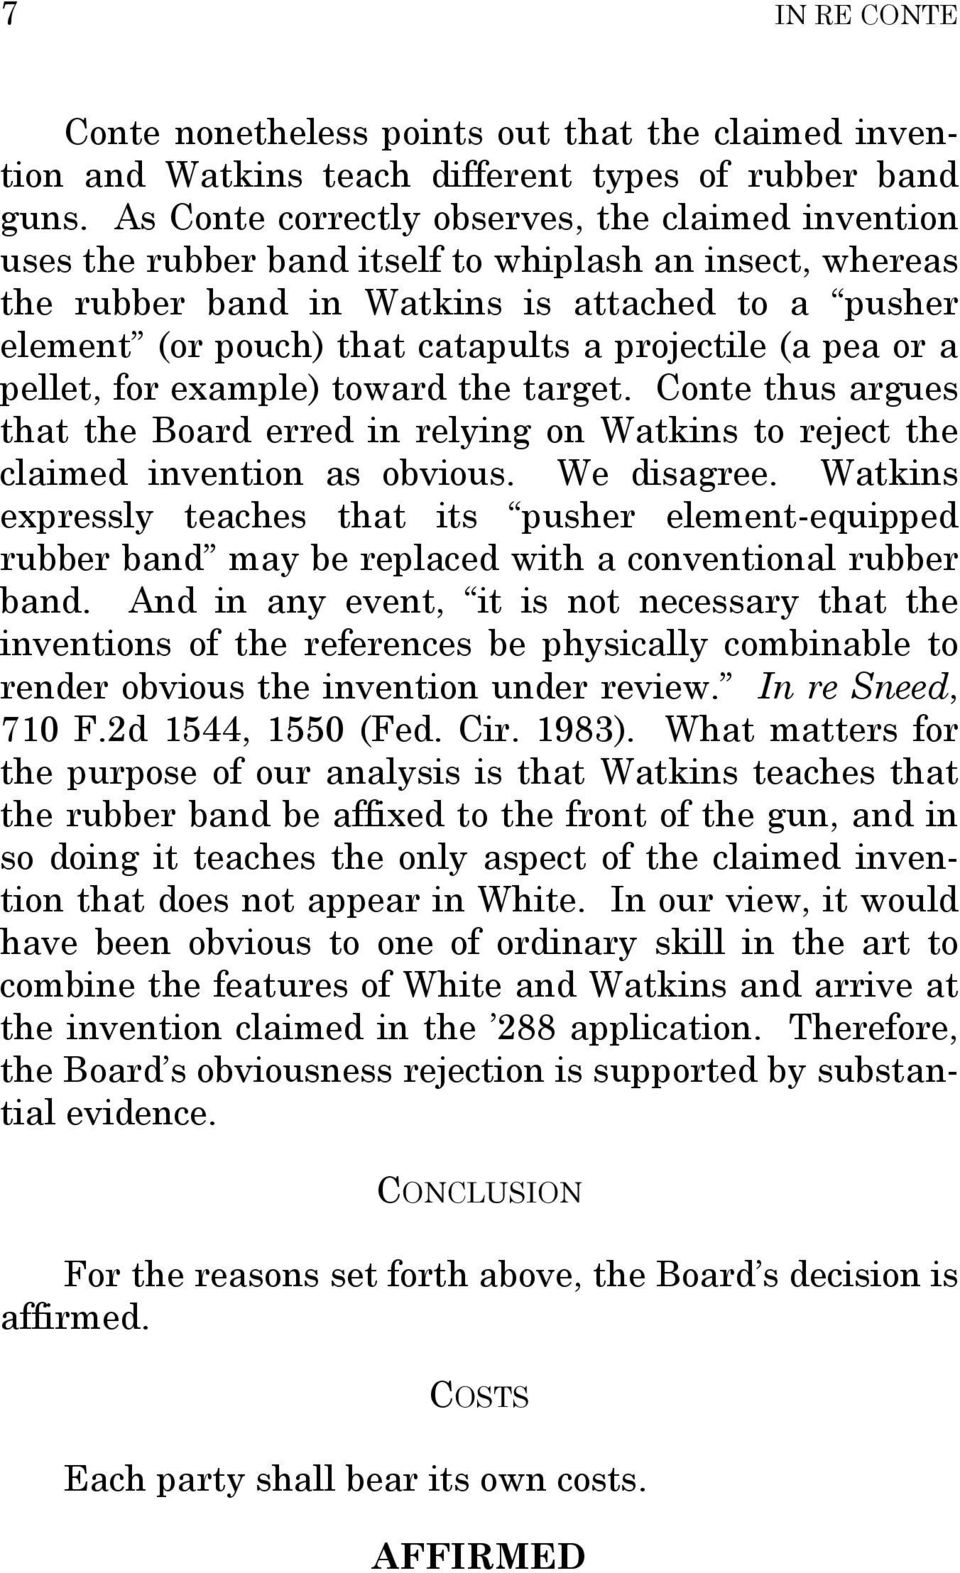 projectile (a pea or a pellet, for example) toward the target. Conte thus argues that the Board erred in relying on Watkins to reject the claimed invention as obvious. We disagree.